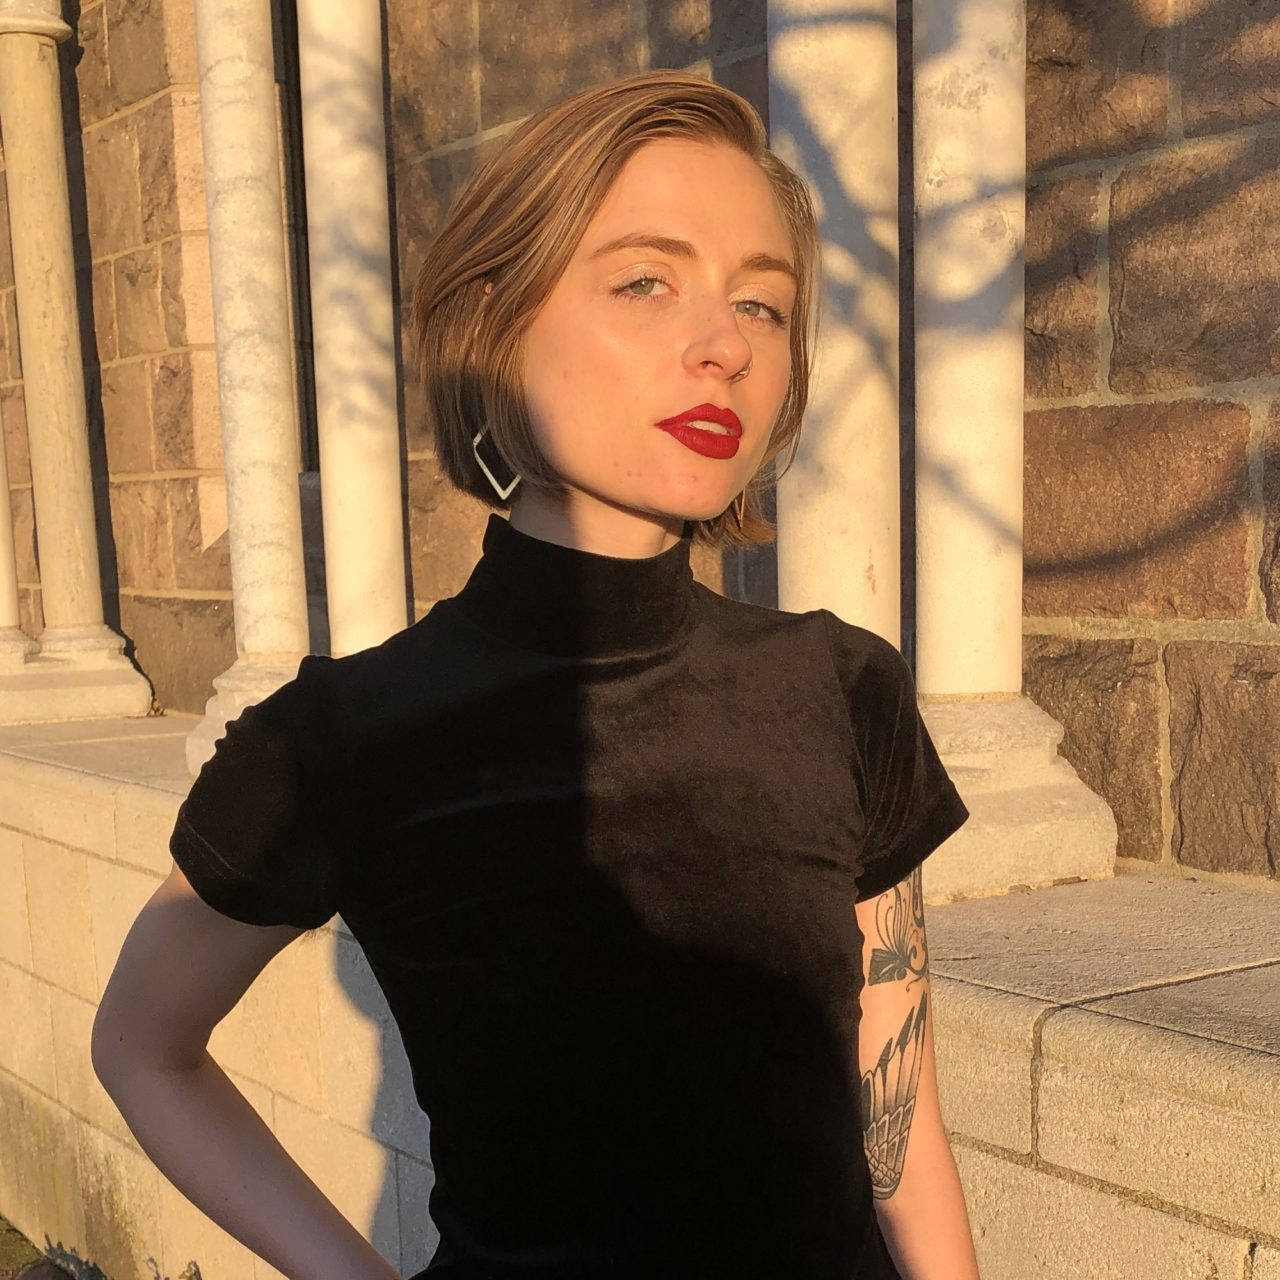 A young white femme with a short blond bob, and red lipstick looks directly into the camera. She is wearing a short-sleeved, black, velvet turtleneck and black leather pants. Her weight is planted on her right hip, where her right hand is also. She is standing in front of a medieval, stone building and you can nearly feel the desire emanating from her client (out of frame) who is taking the photo.